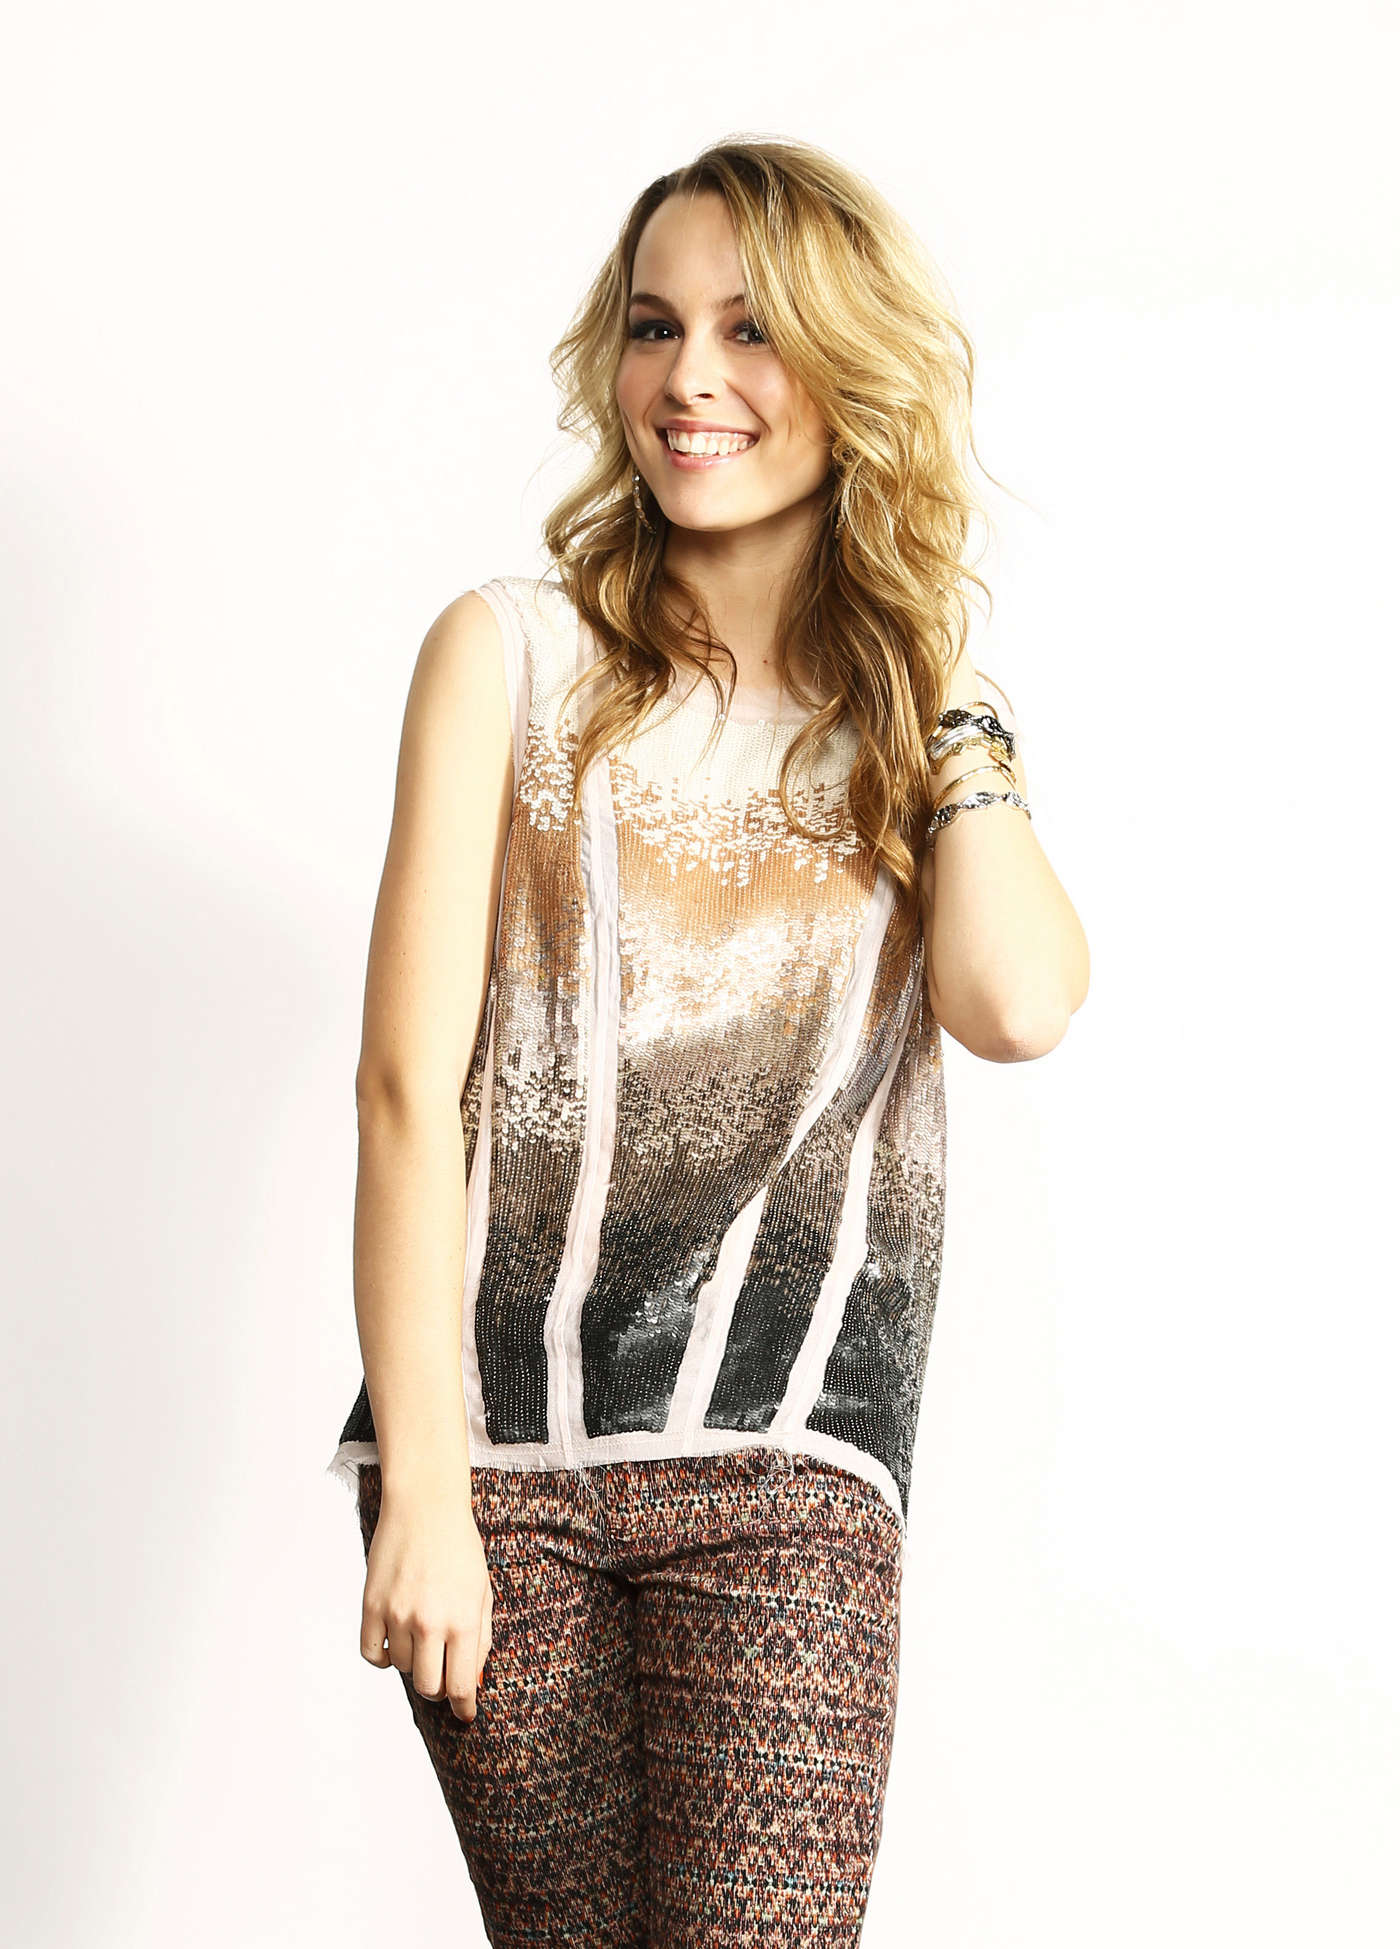 Bridgit%20Mendler%20at%20Z100s%20Jingle%20Ball%202012%20Photoshoot%20-12.jpg